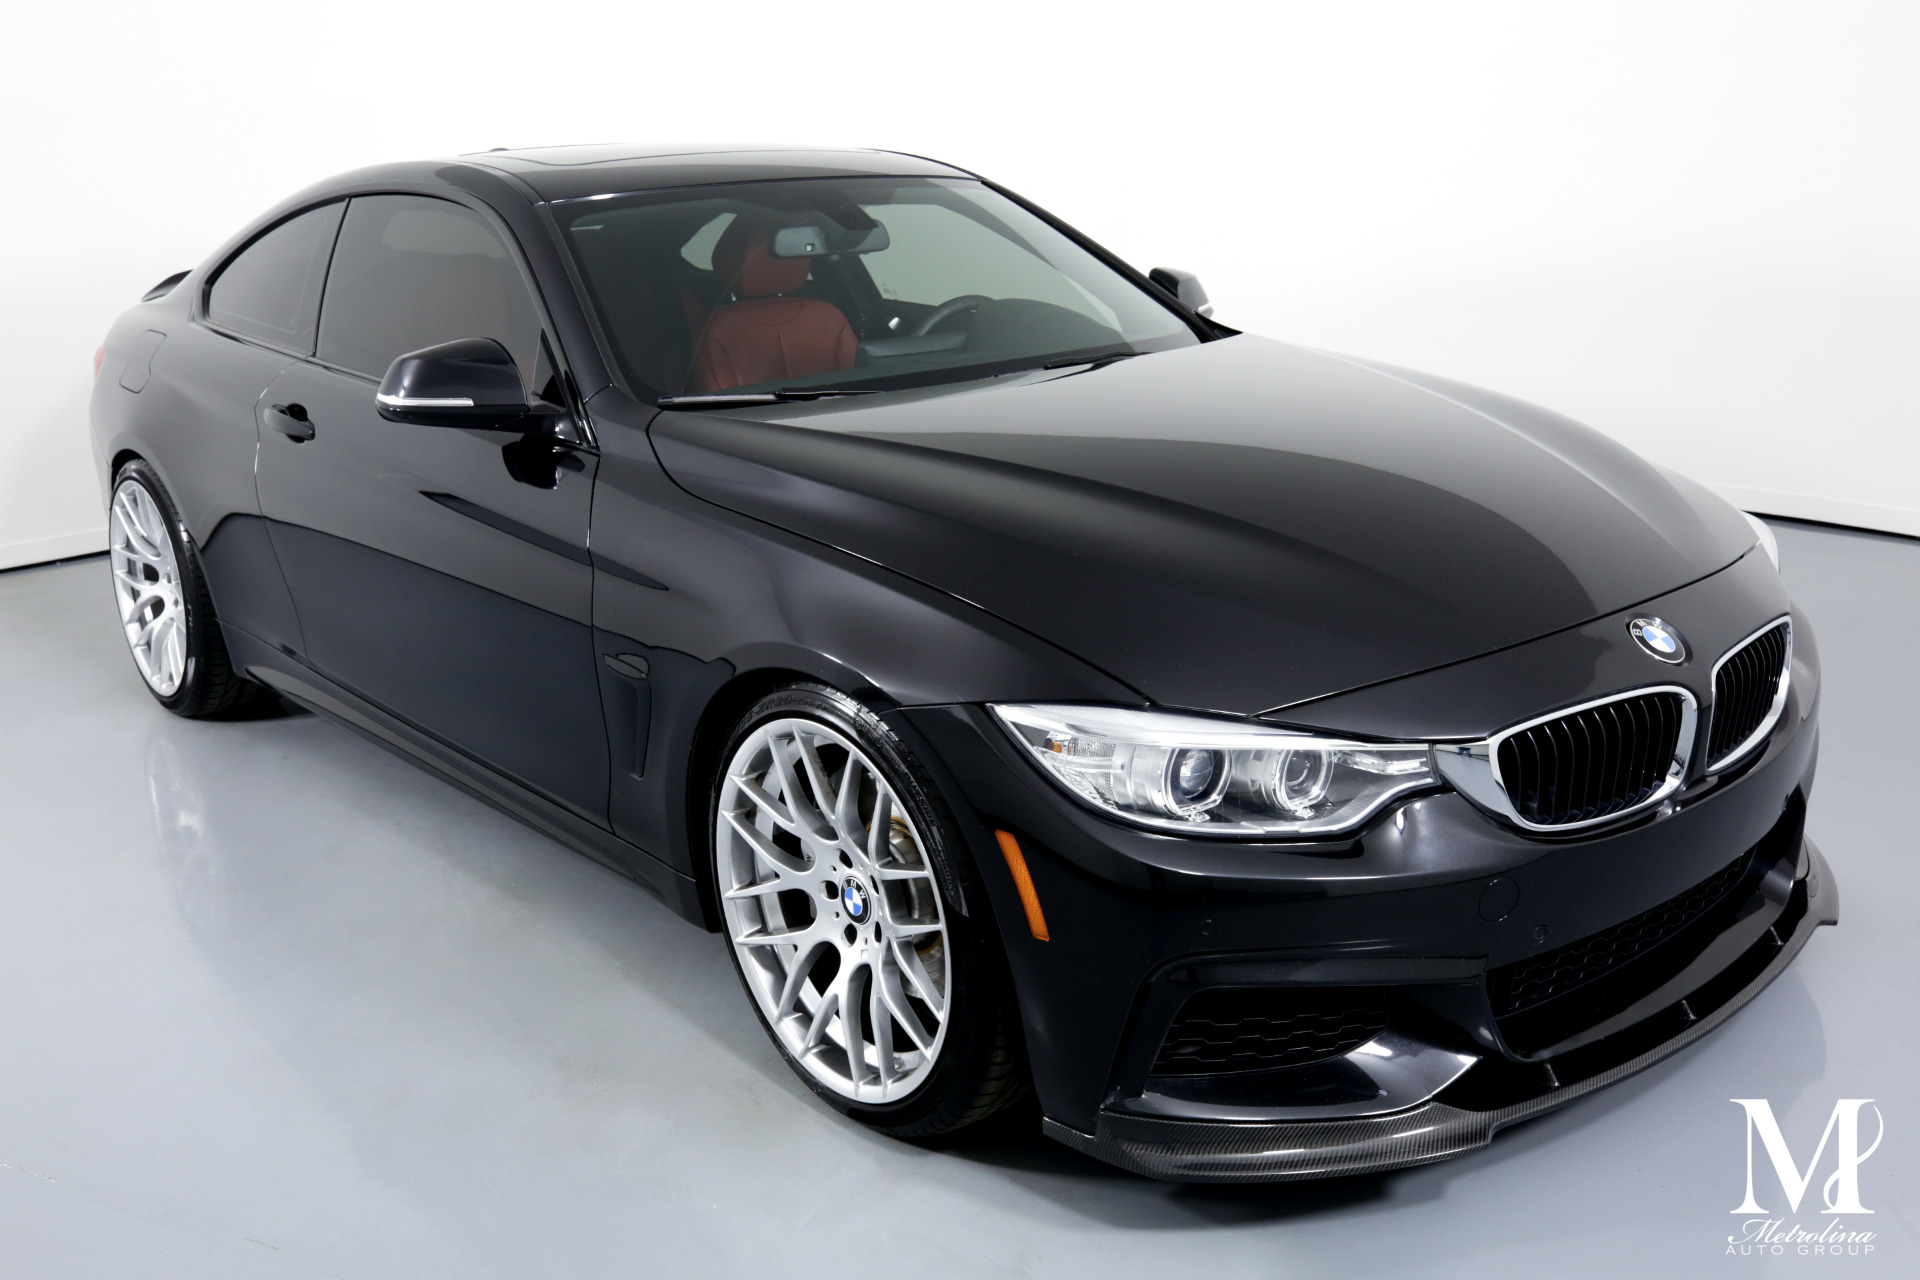 Used 2015 BMW 4 Series 435i for sale Sold at Metrolina Auto Group in Charlotte NC 28217 - 2